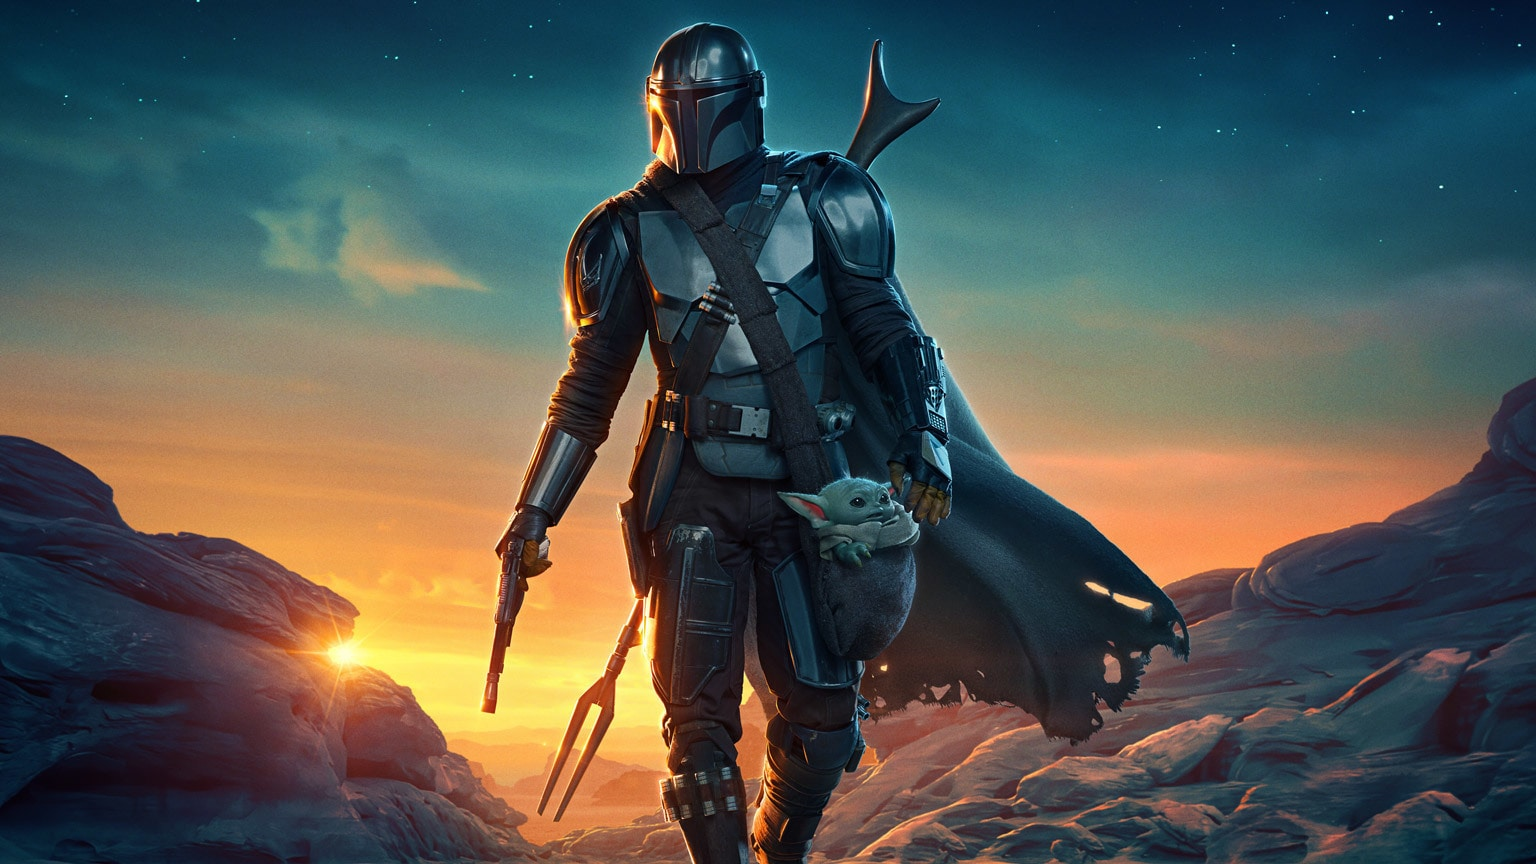 The Mandalorian Season Two: 5 Things We Love From the New Trailer